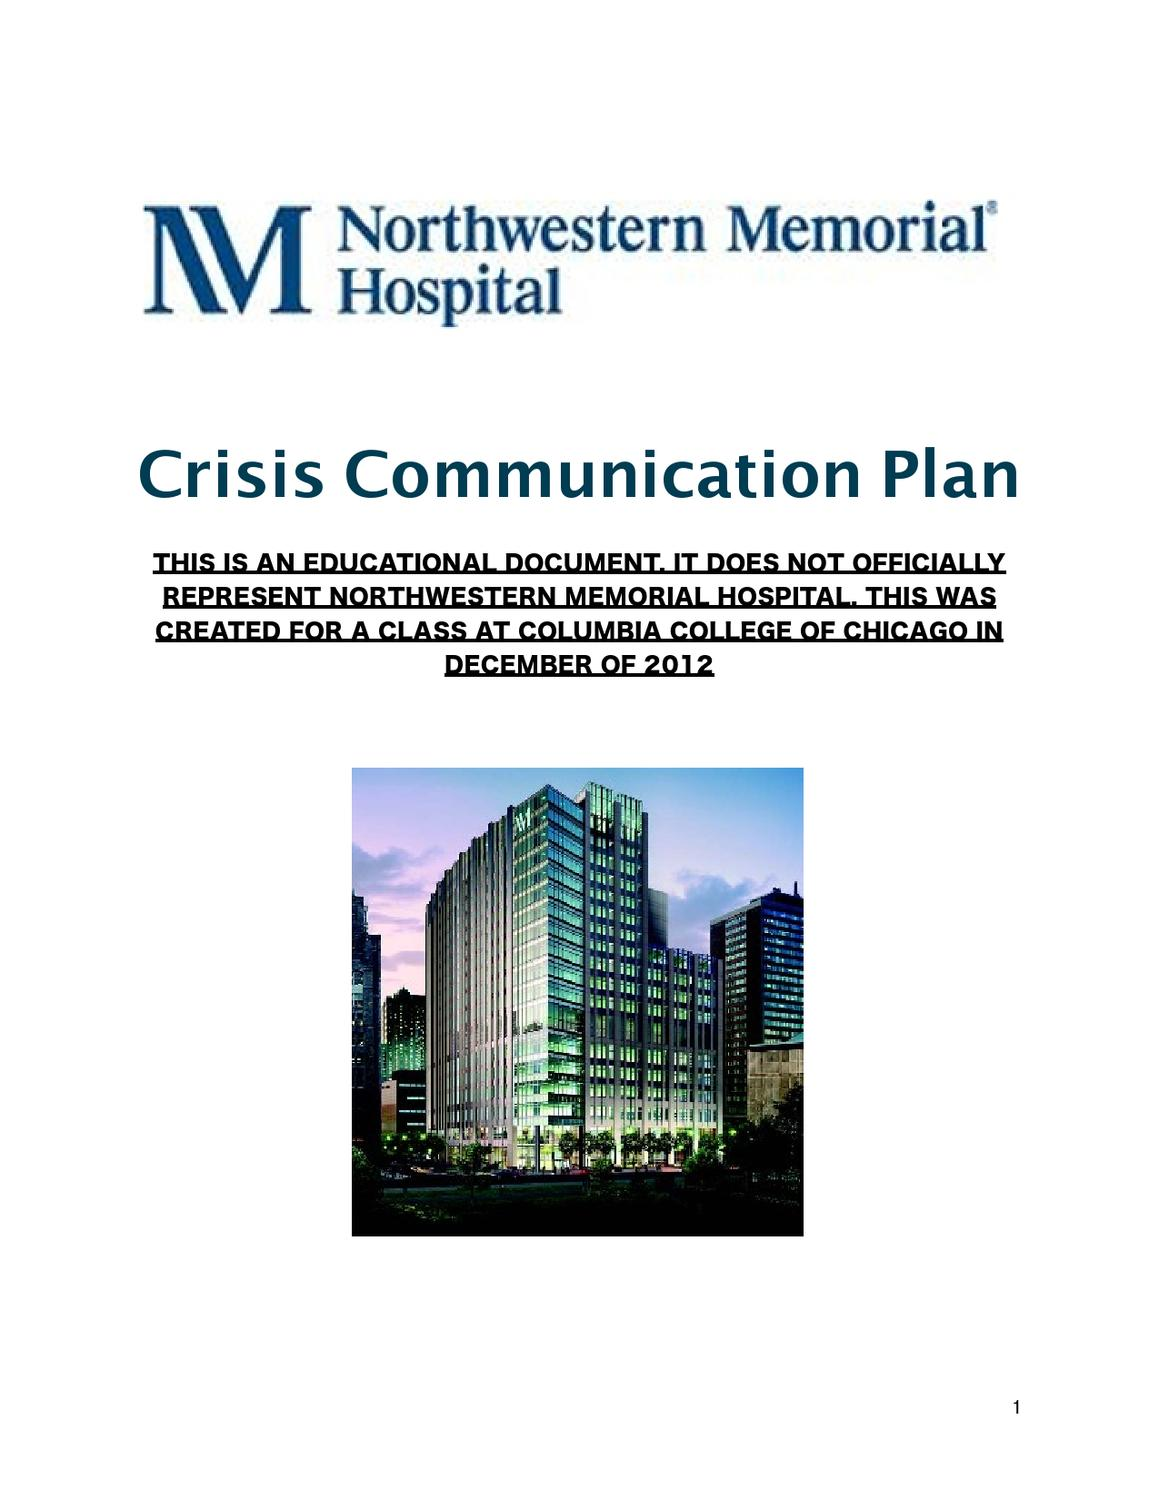 case 6 columbia memorial hospital Break-even analysis columbia memorial hospital  columbia memorial hospital break-even analysis group 6 case background pros and cons of 3 solutions close the clinic.